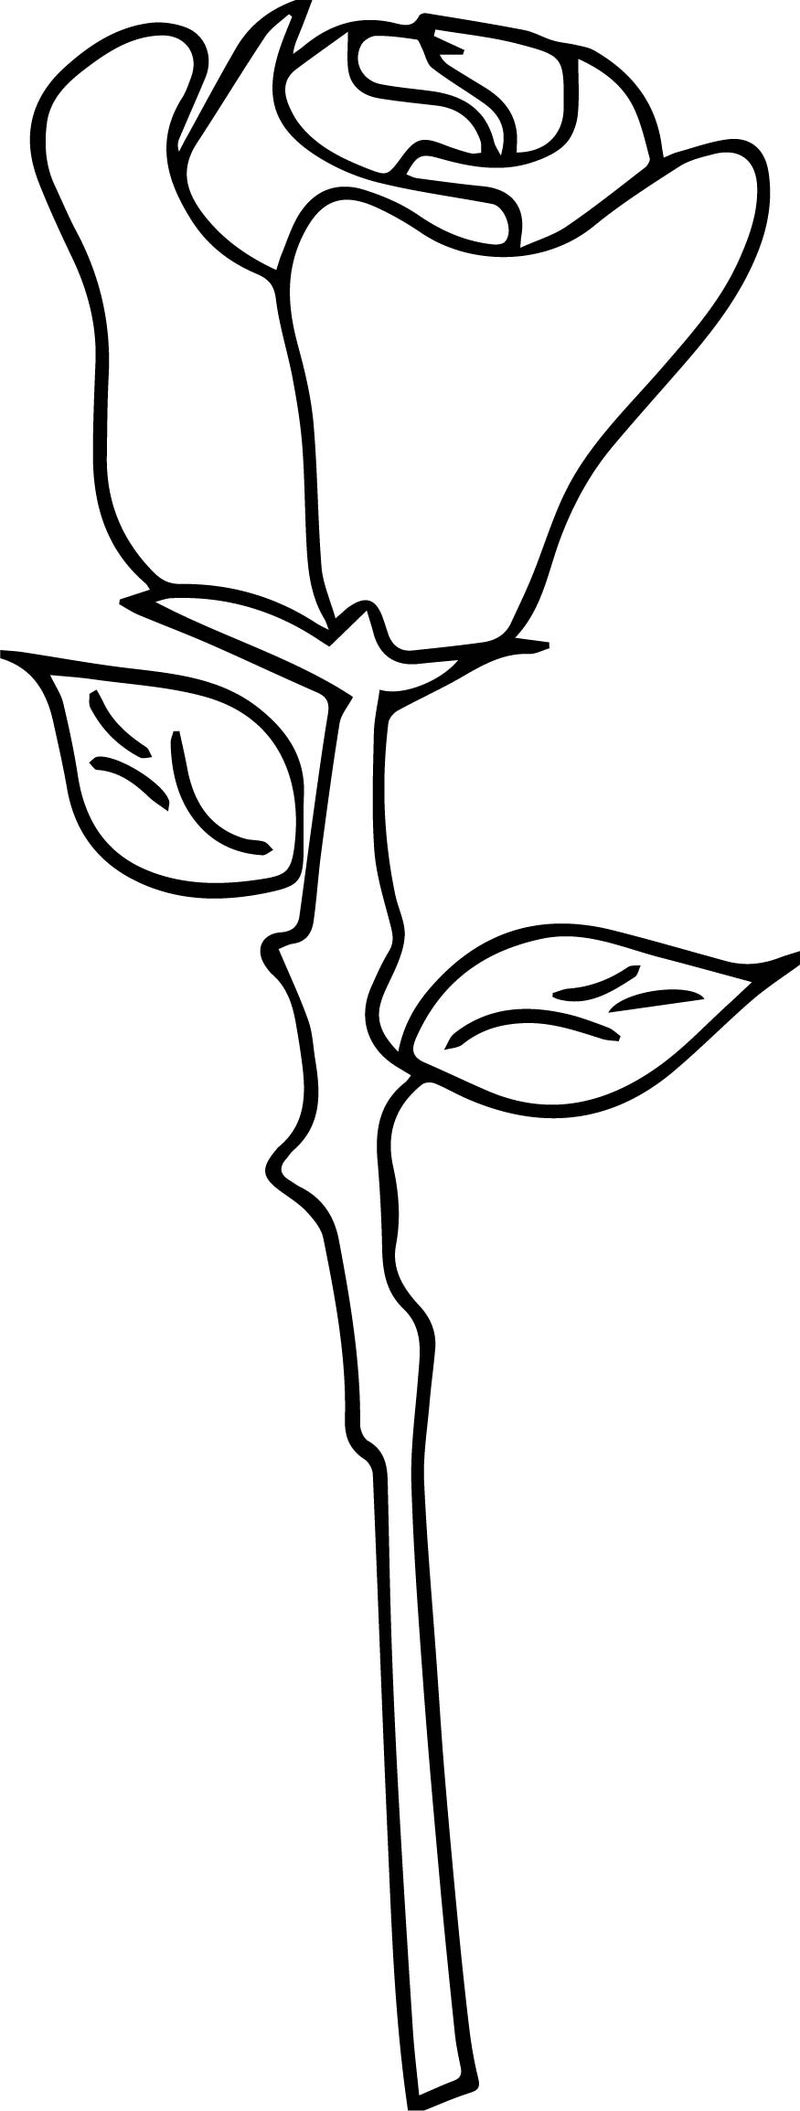 Simple Rose Flower Coloring Page